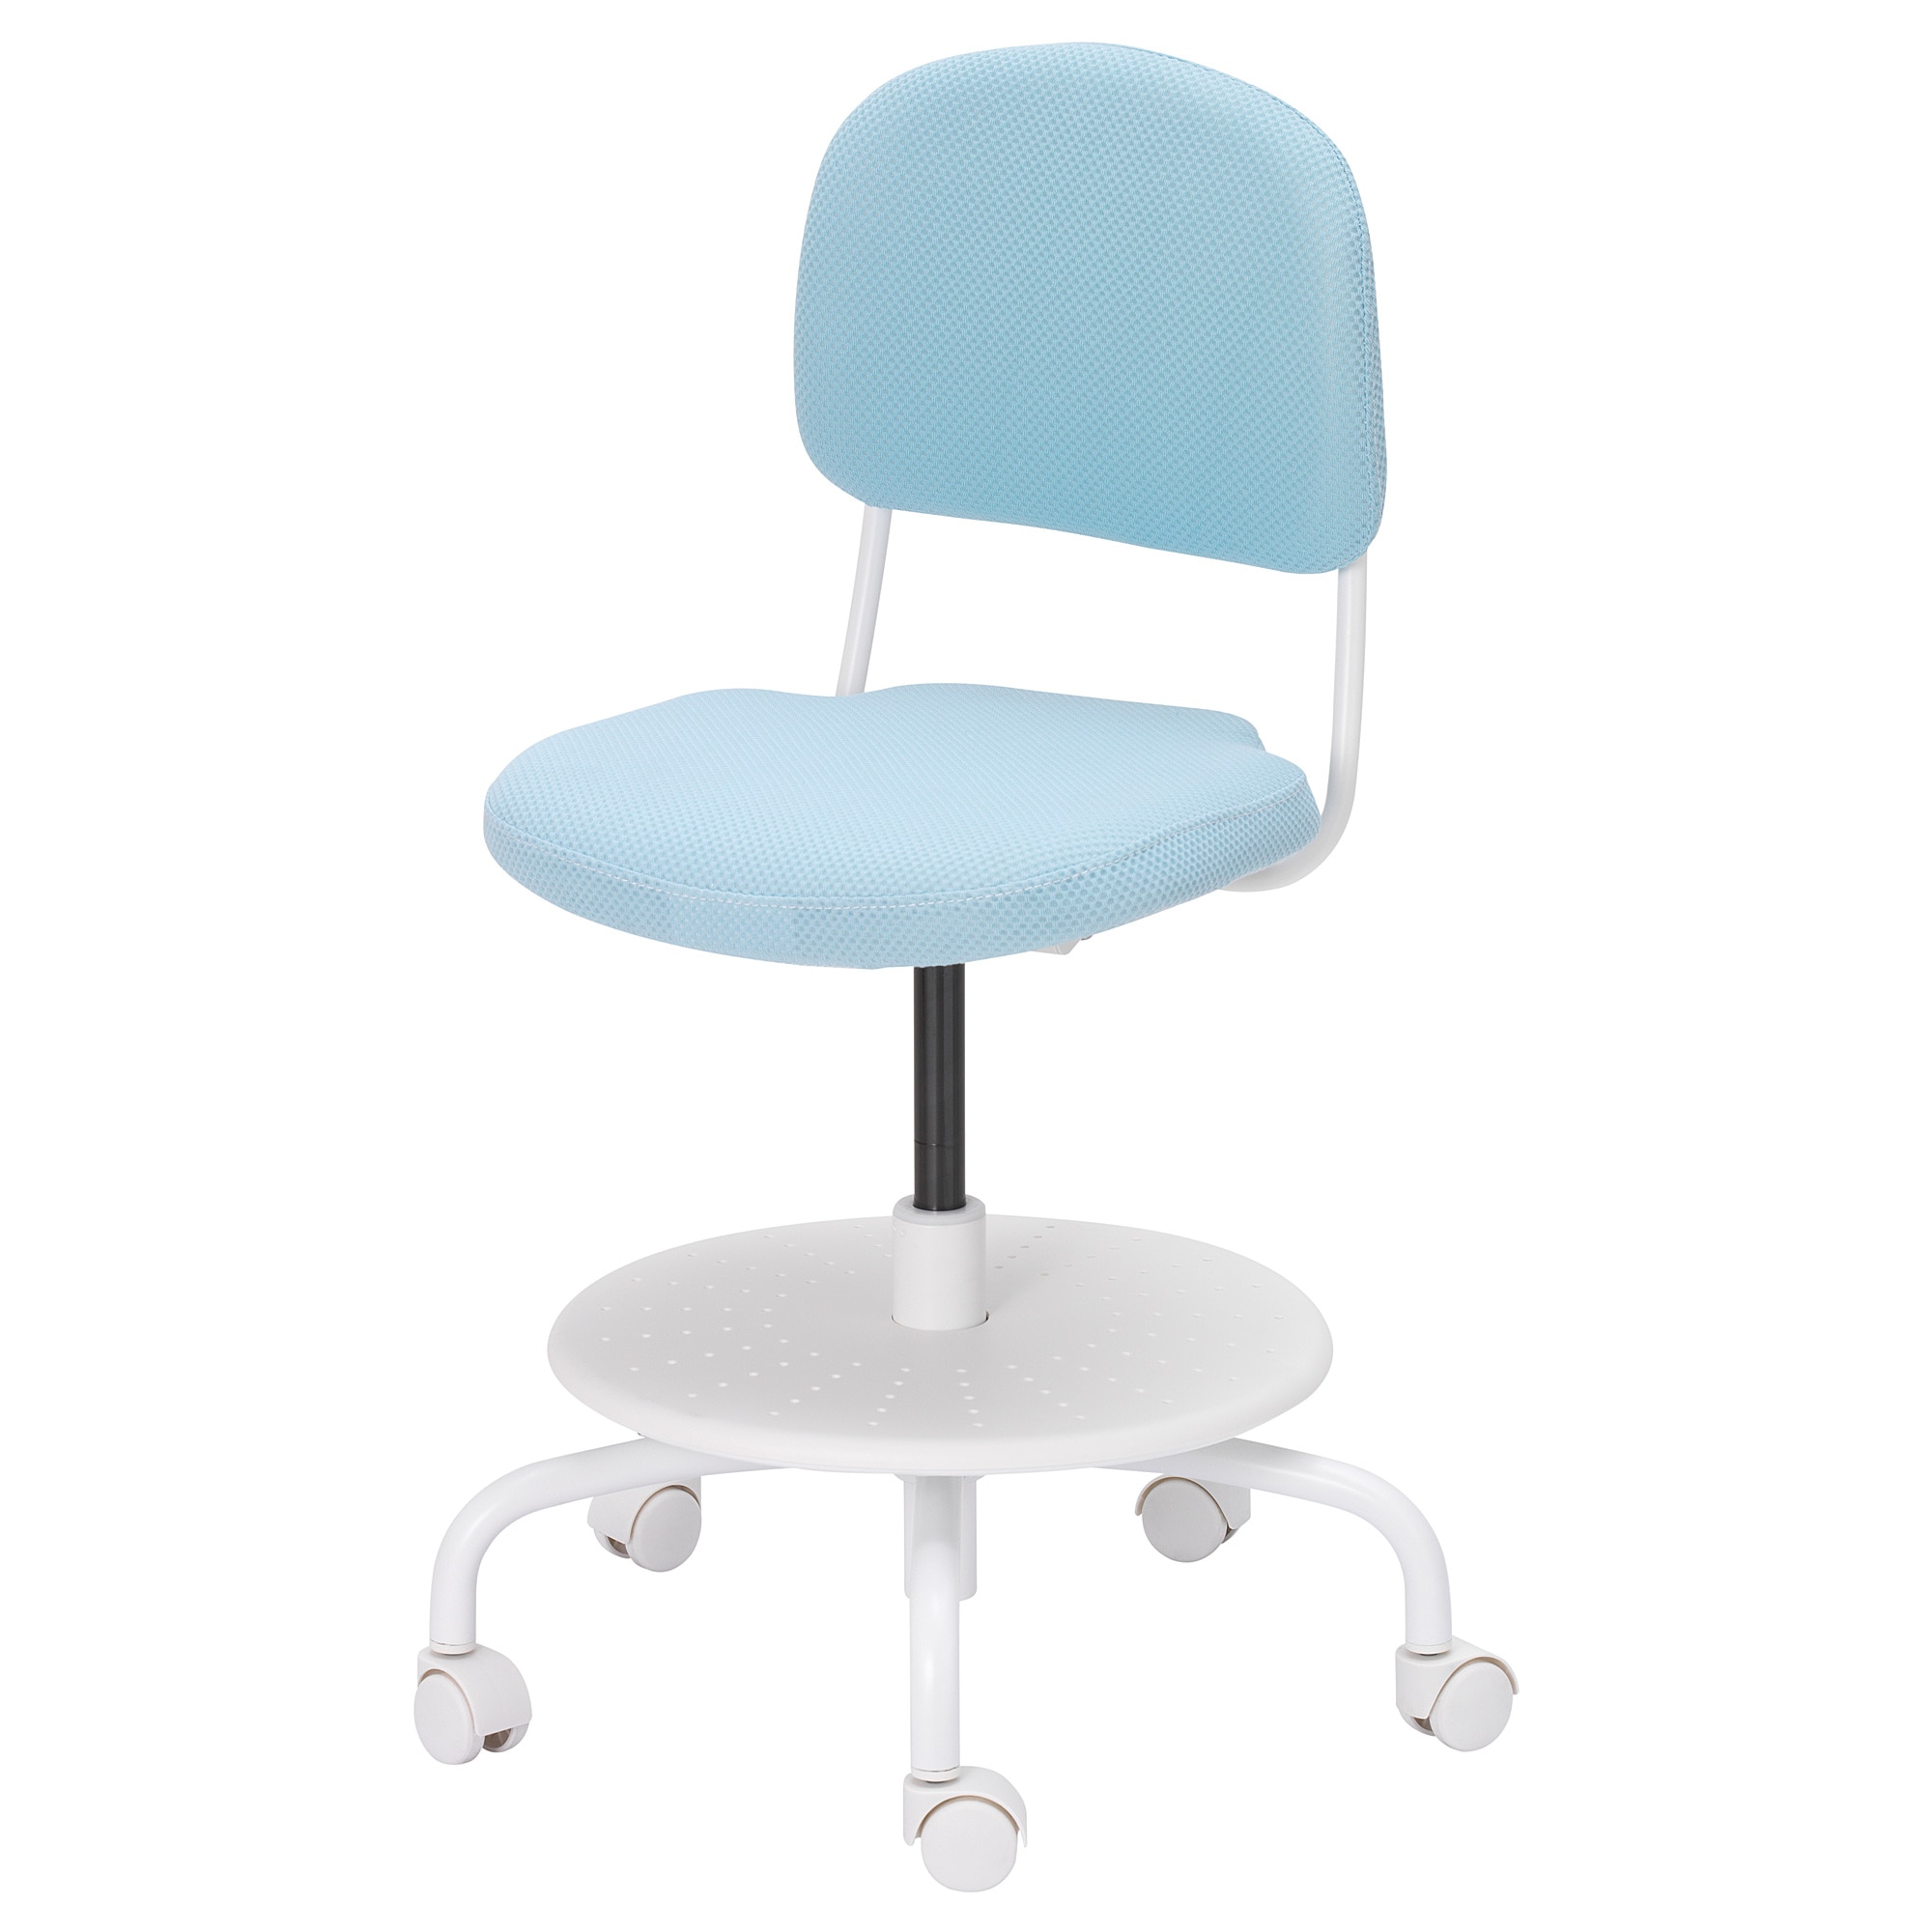 Vimund Child S Desk Chair Light Turquoise Desk Chair Storage